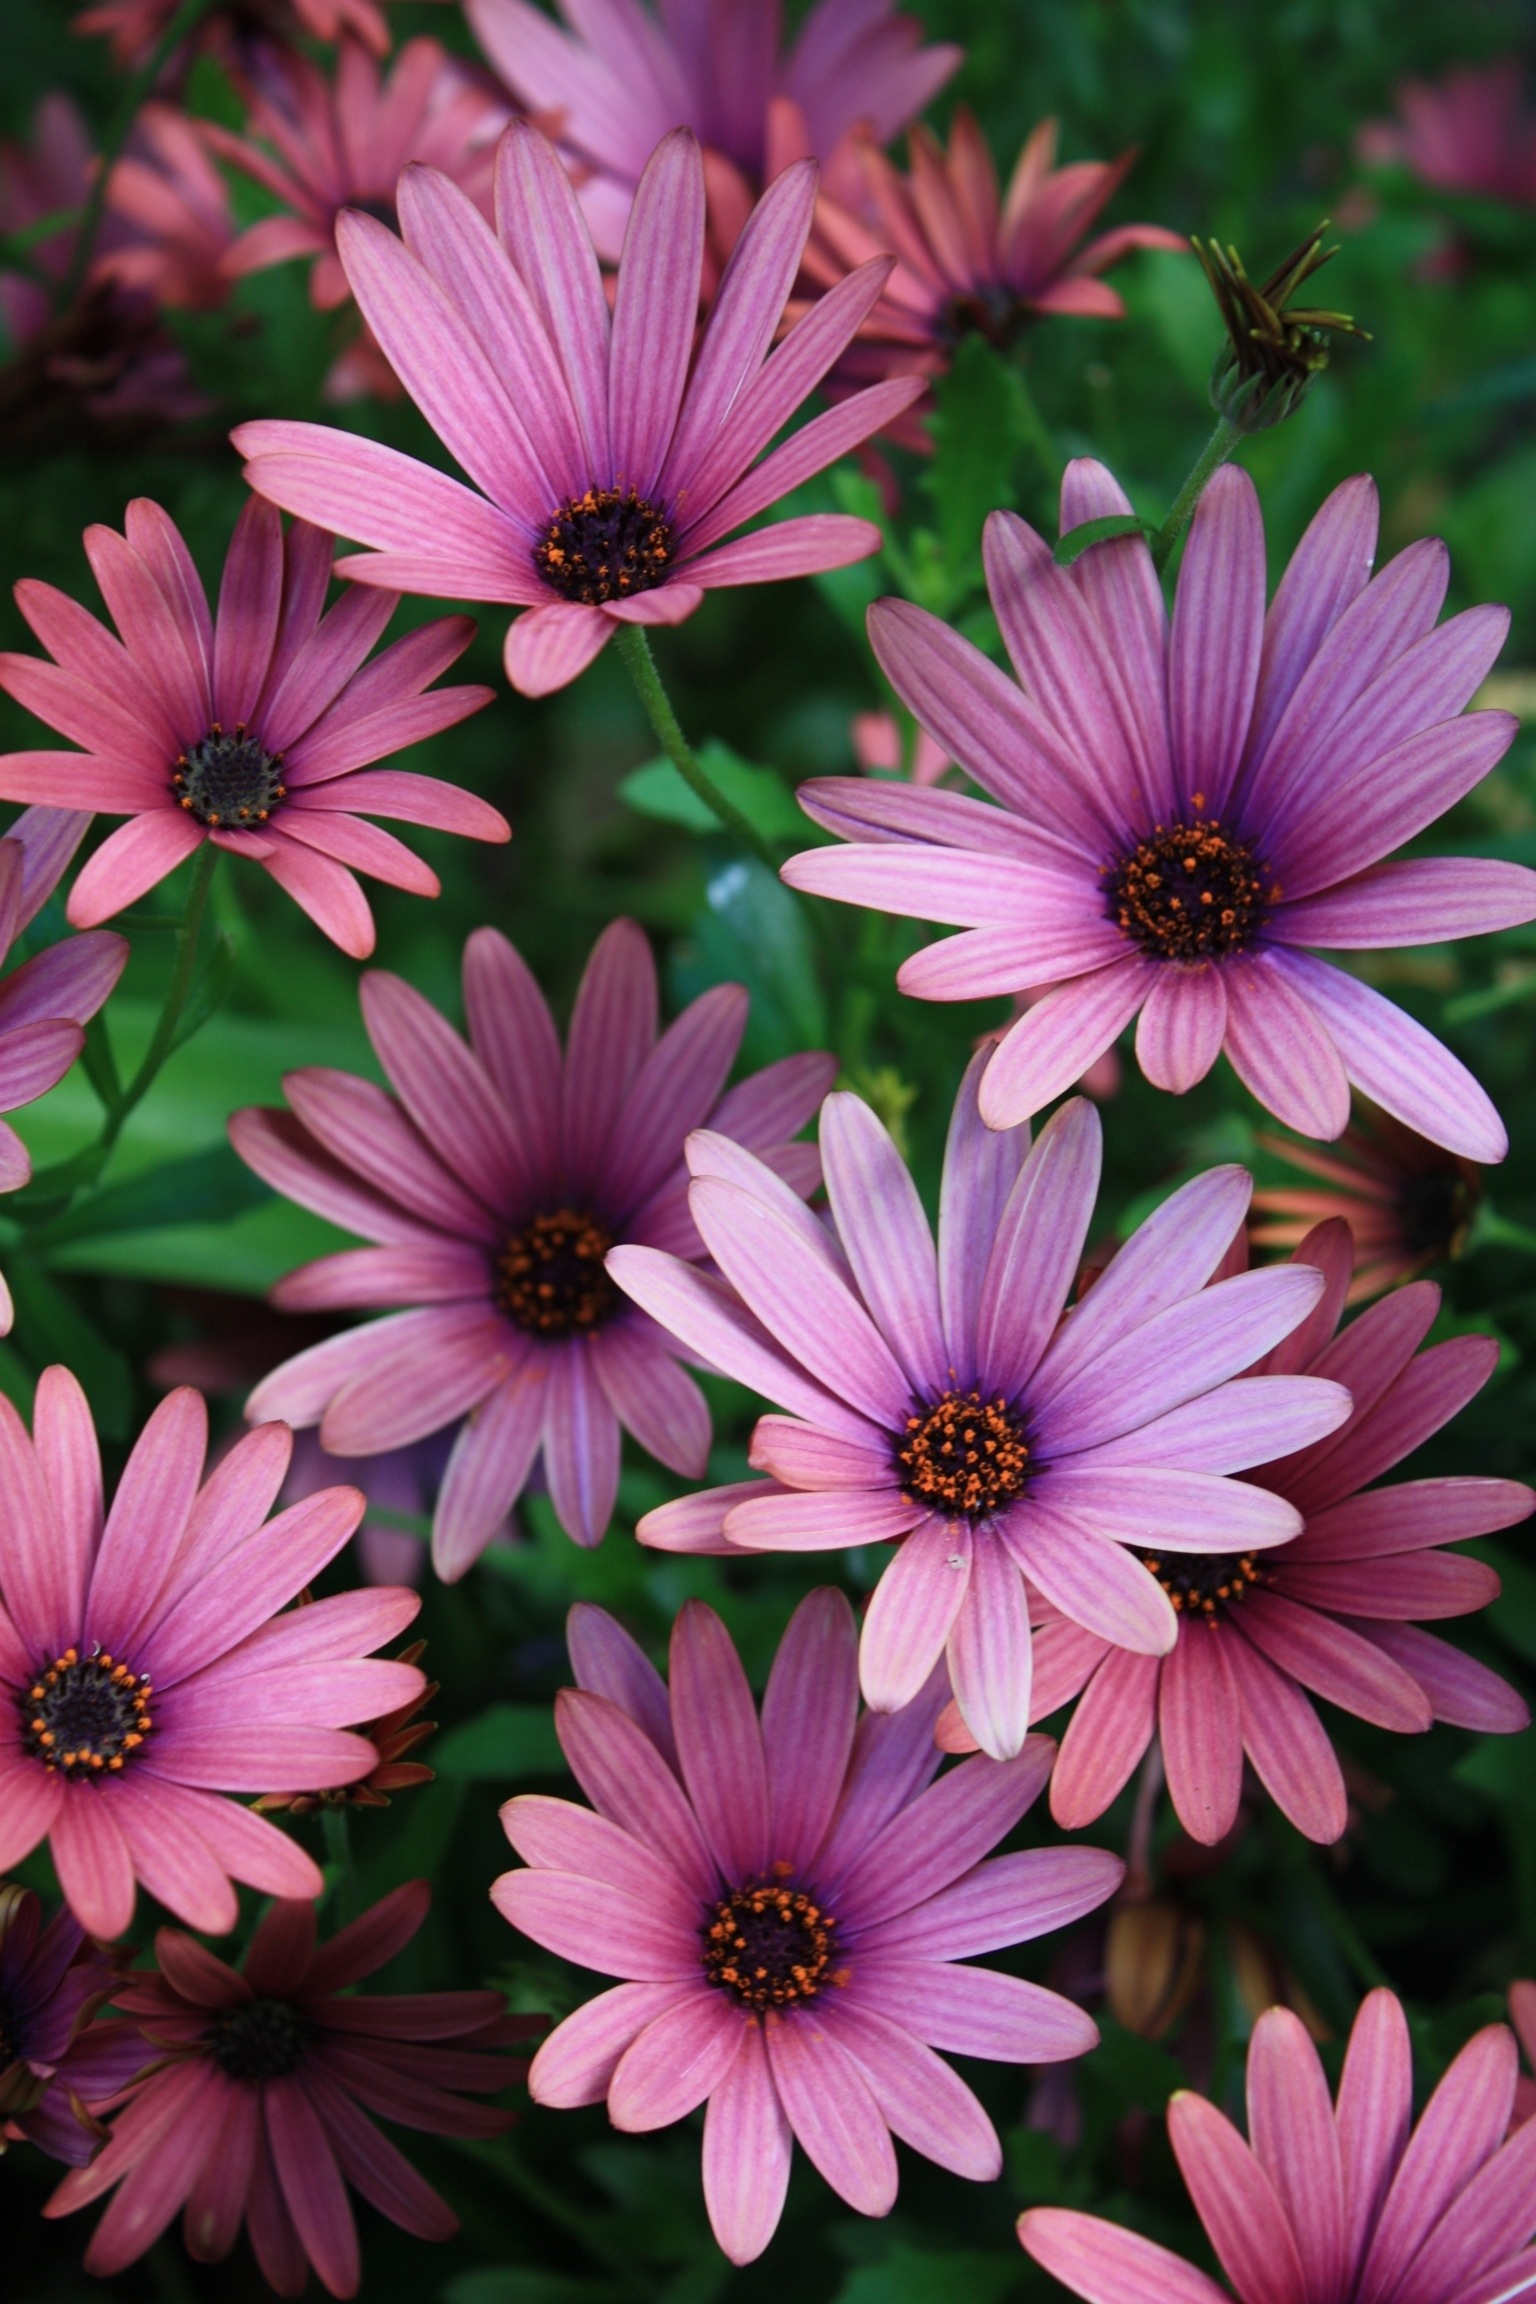 Daily flower candy osteospermum the frustrated gardener osteospermums like warmth and sun although they will tolerate poor soil salt winds and drought after a dry spell it may take a while for flowering to izmirmasajfo Choice Image